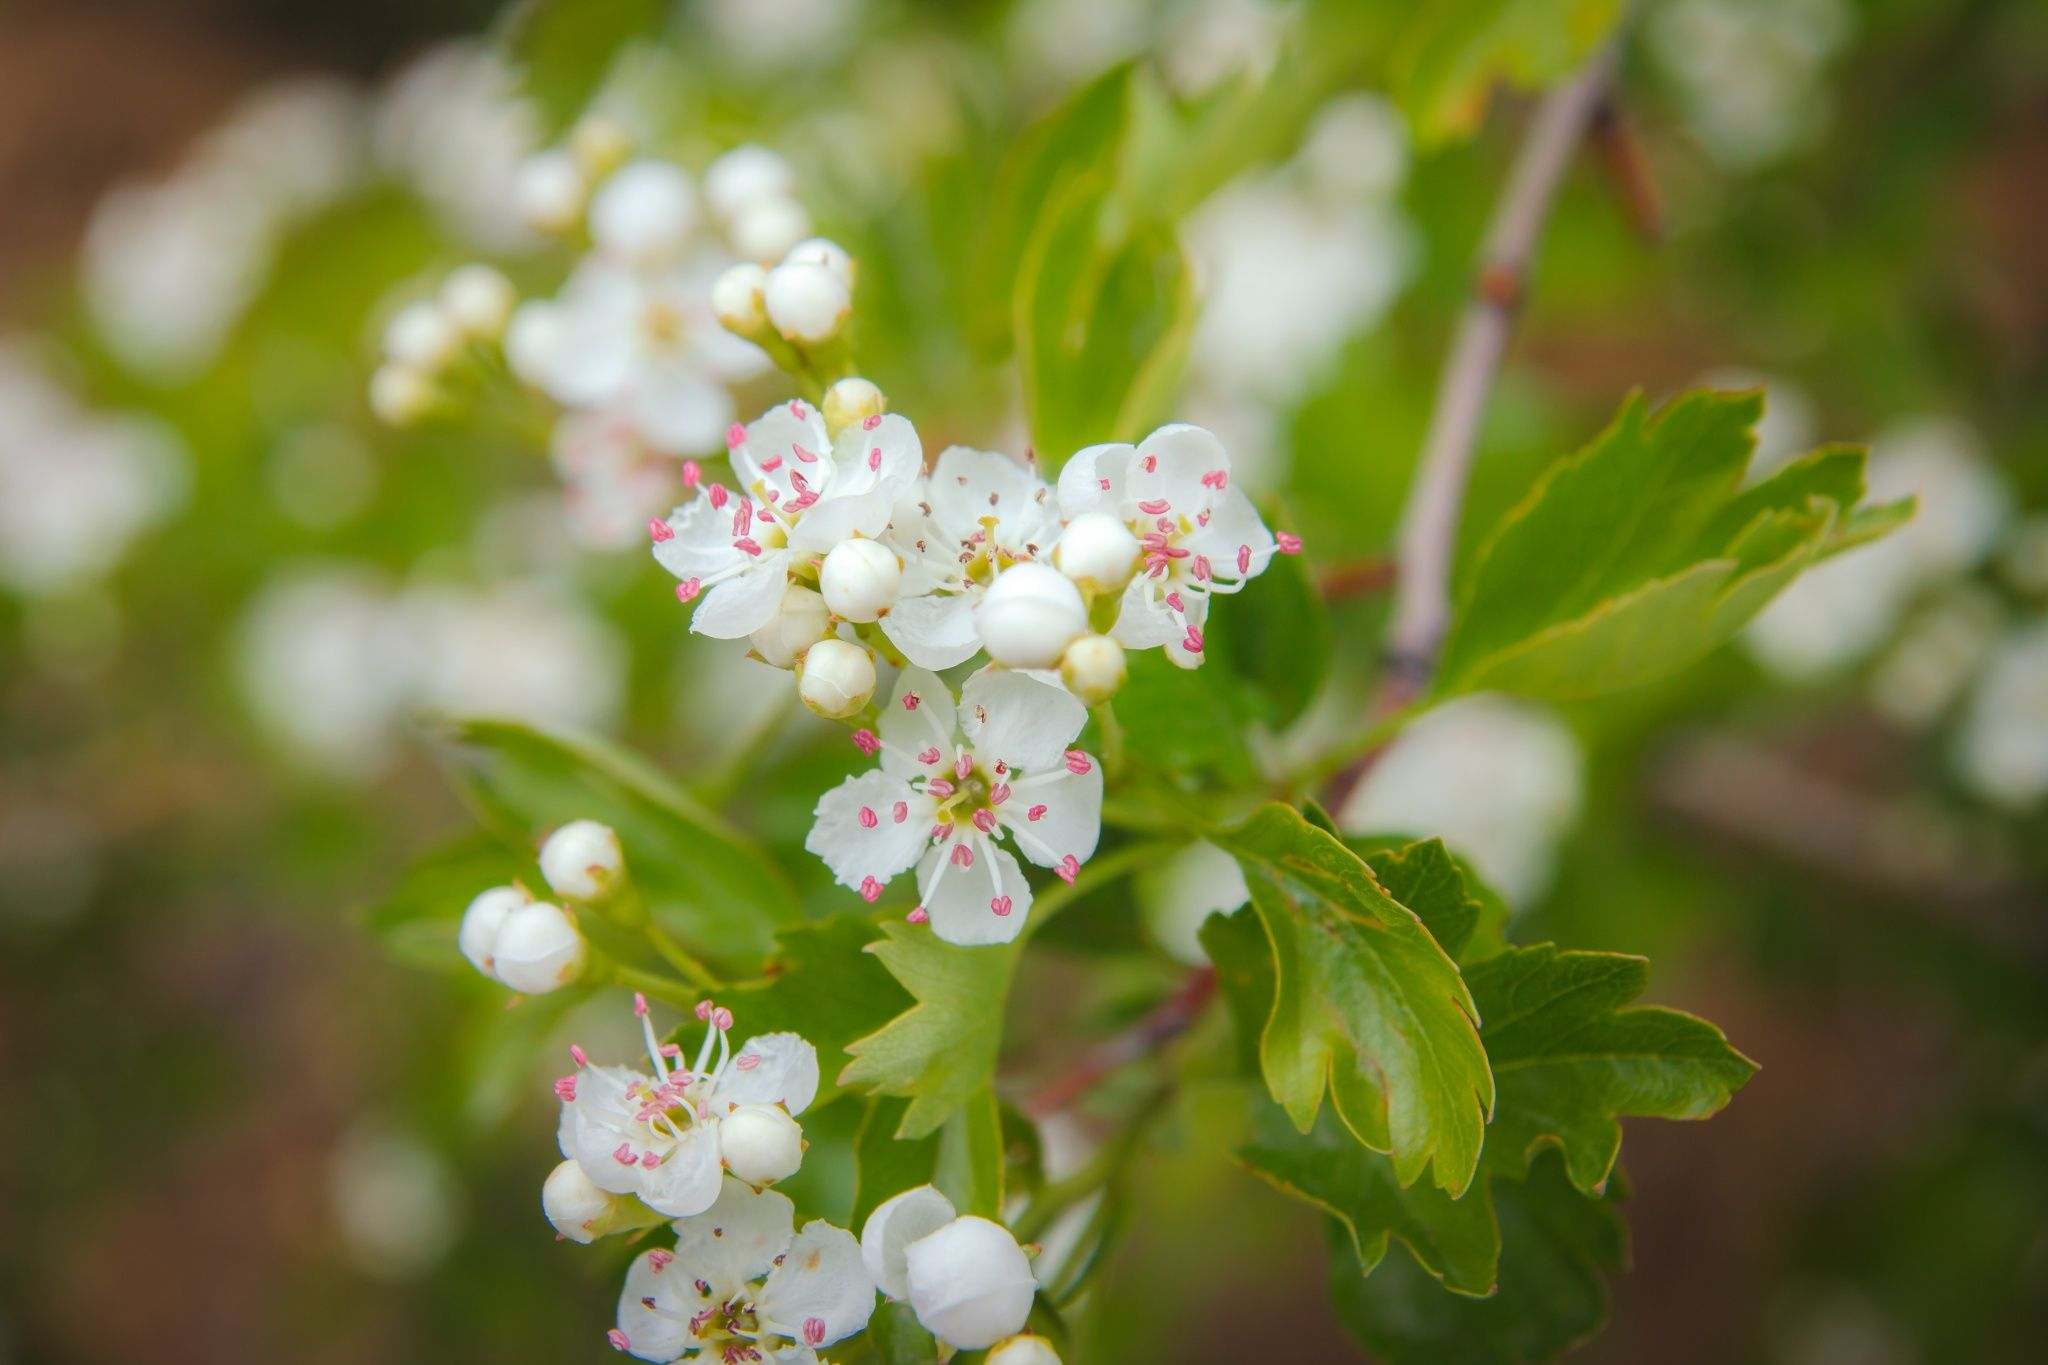 crataegus blossom-2 by Ramazan KAMARI on 500px